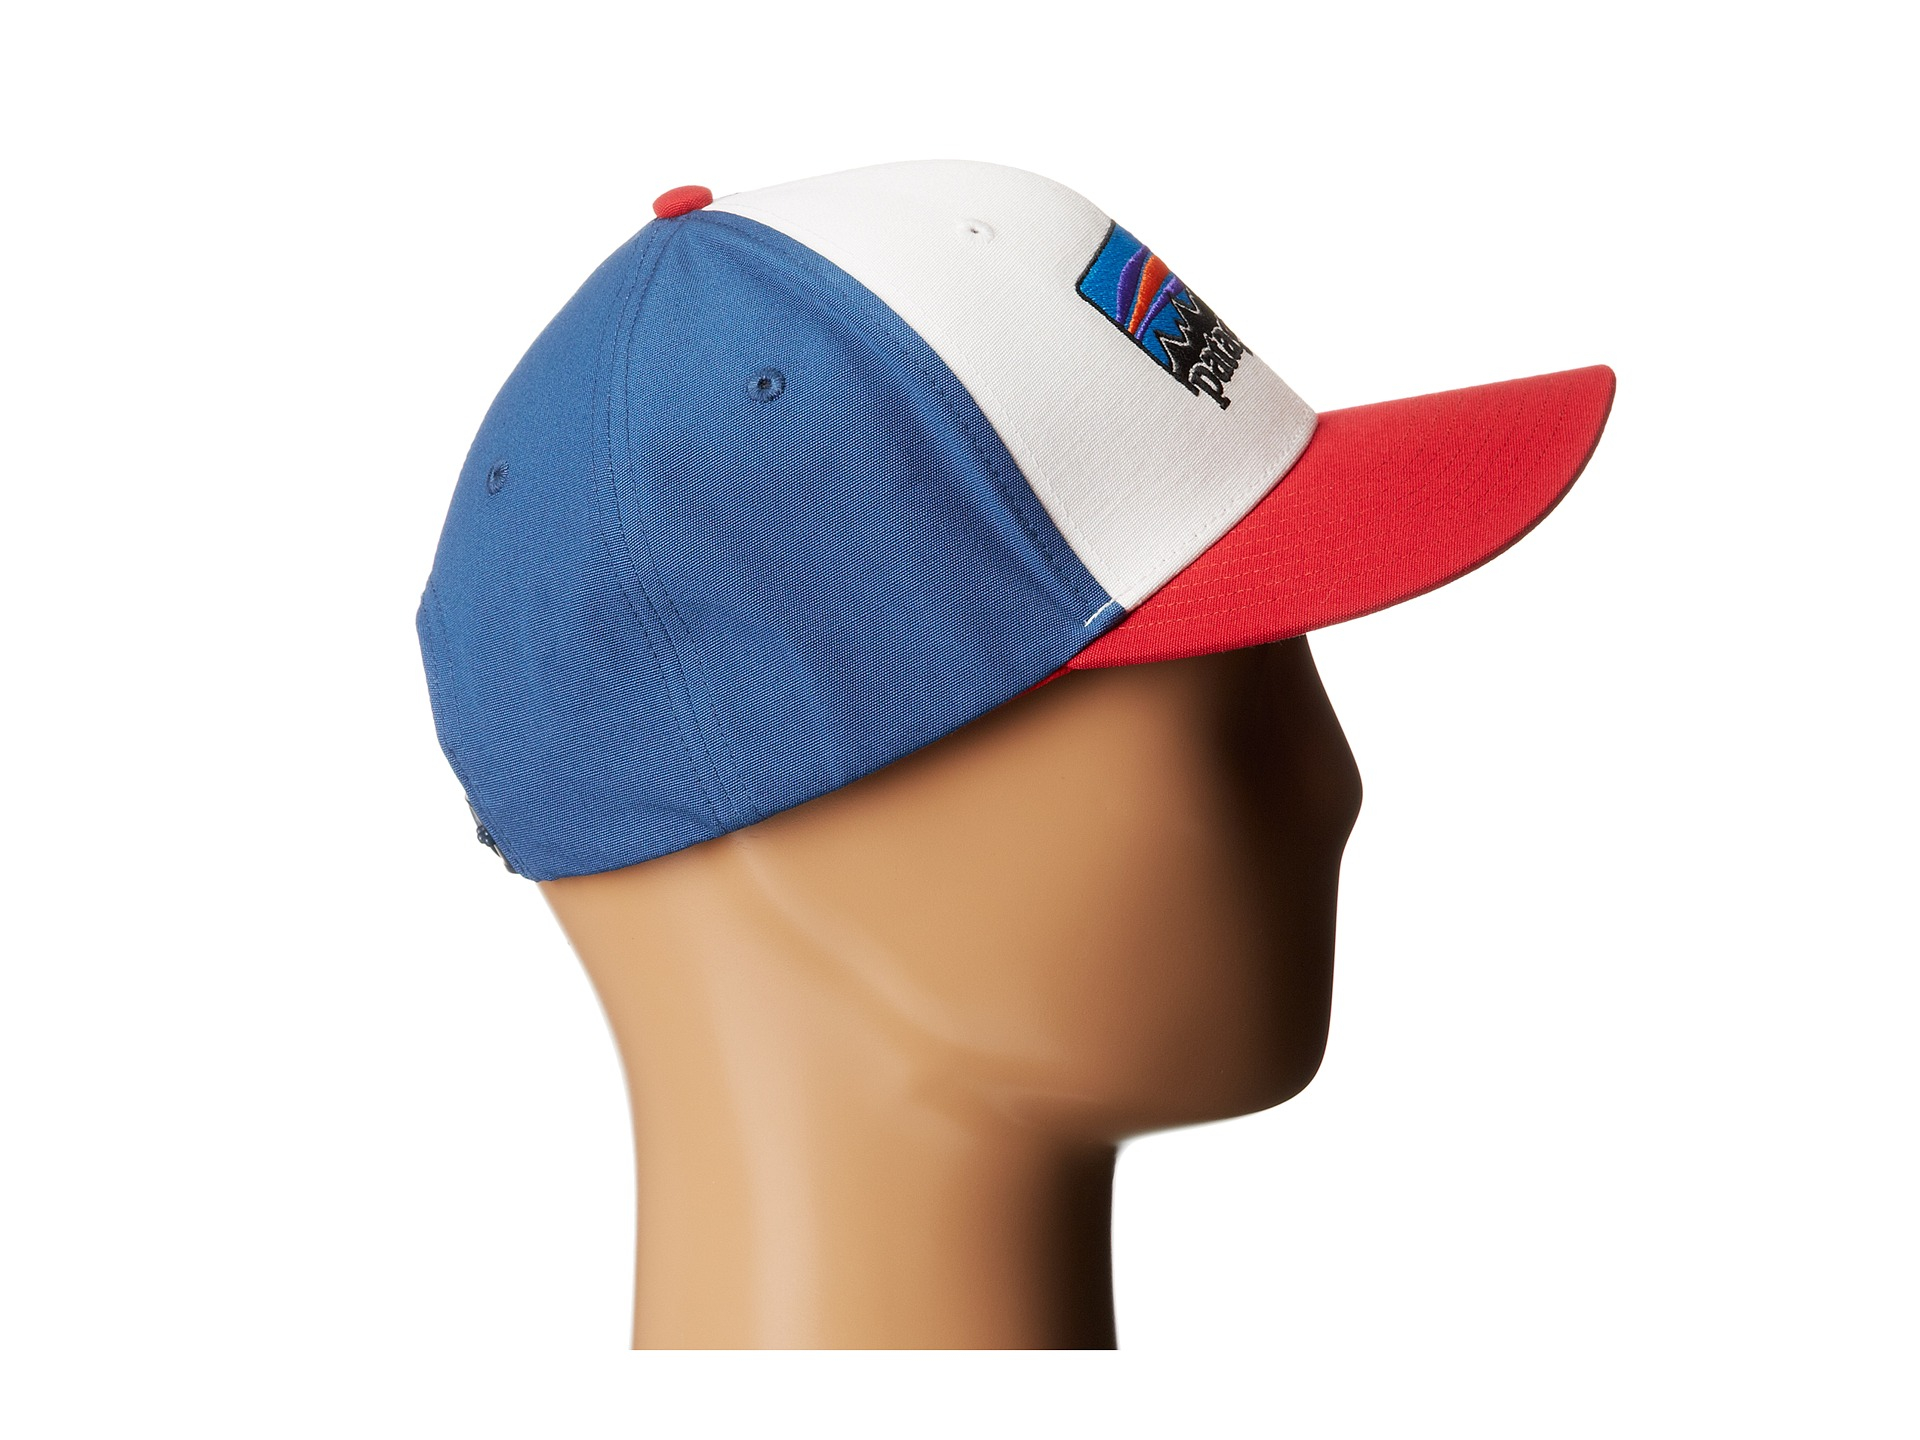 Lyst - Patagonia 73 Logo Roger That Hat in White 1a51293a3b5